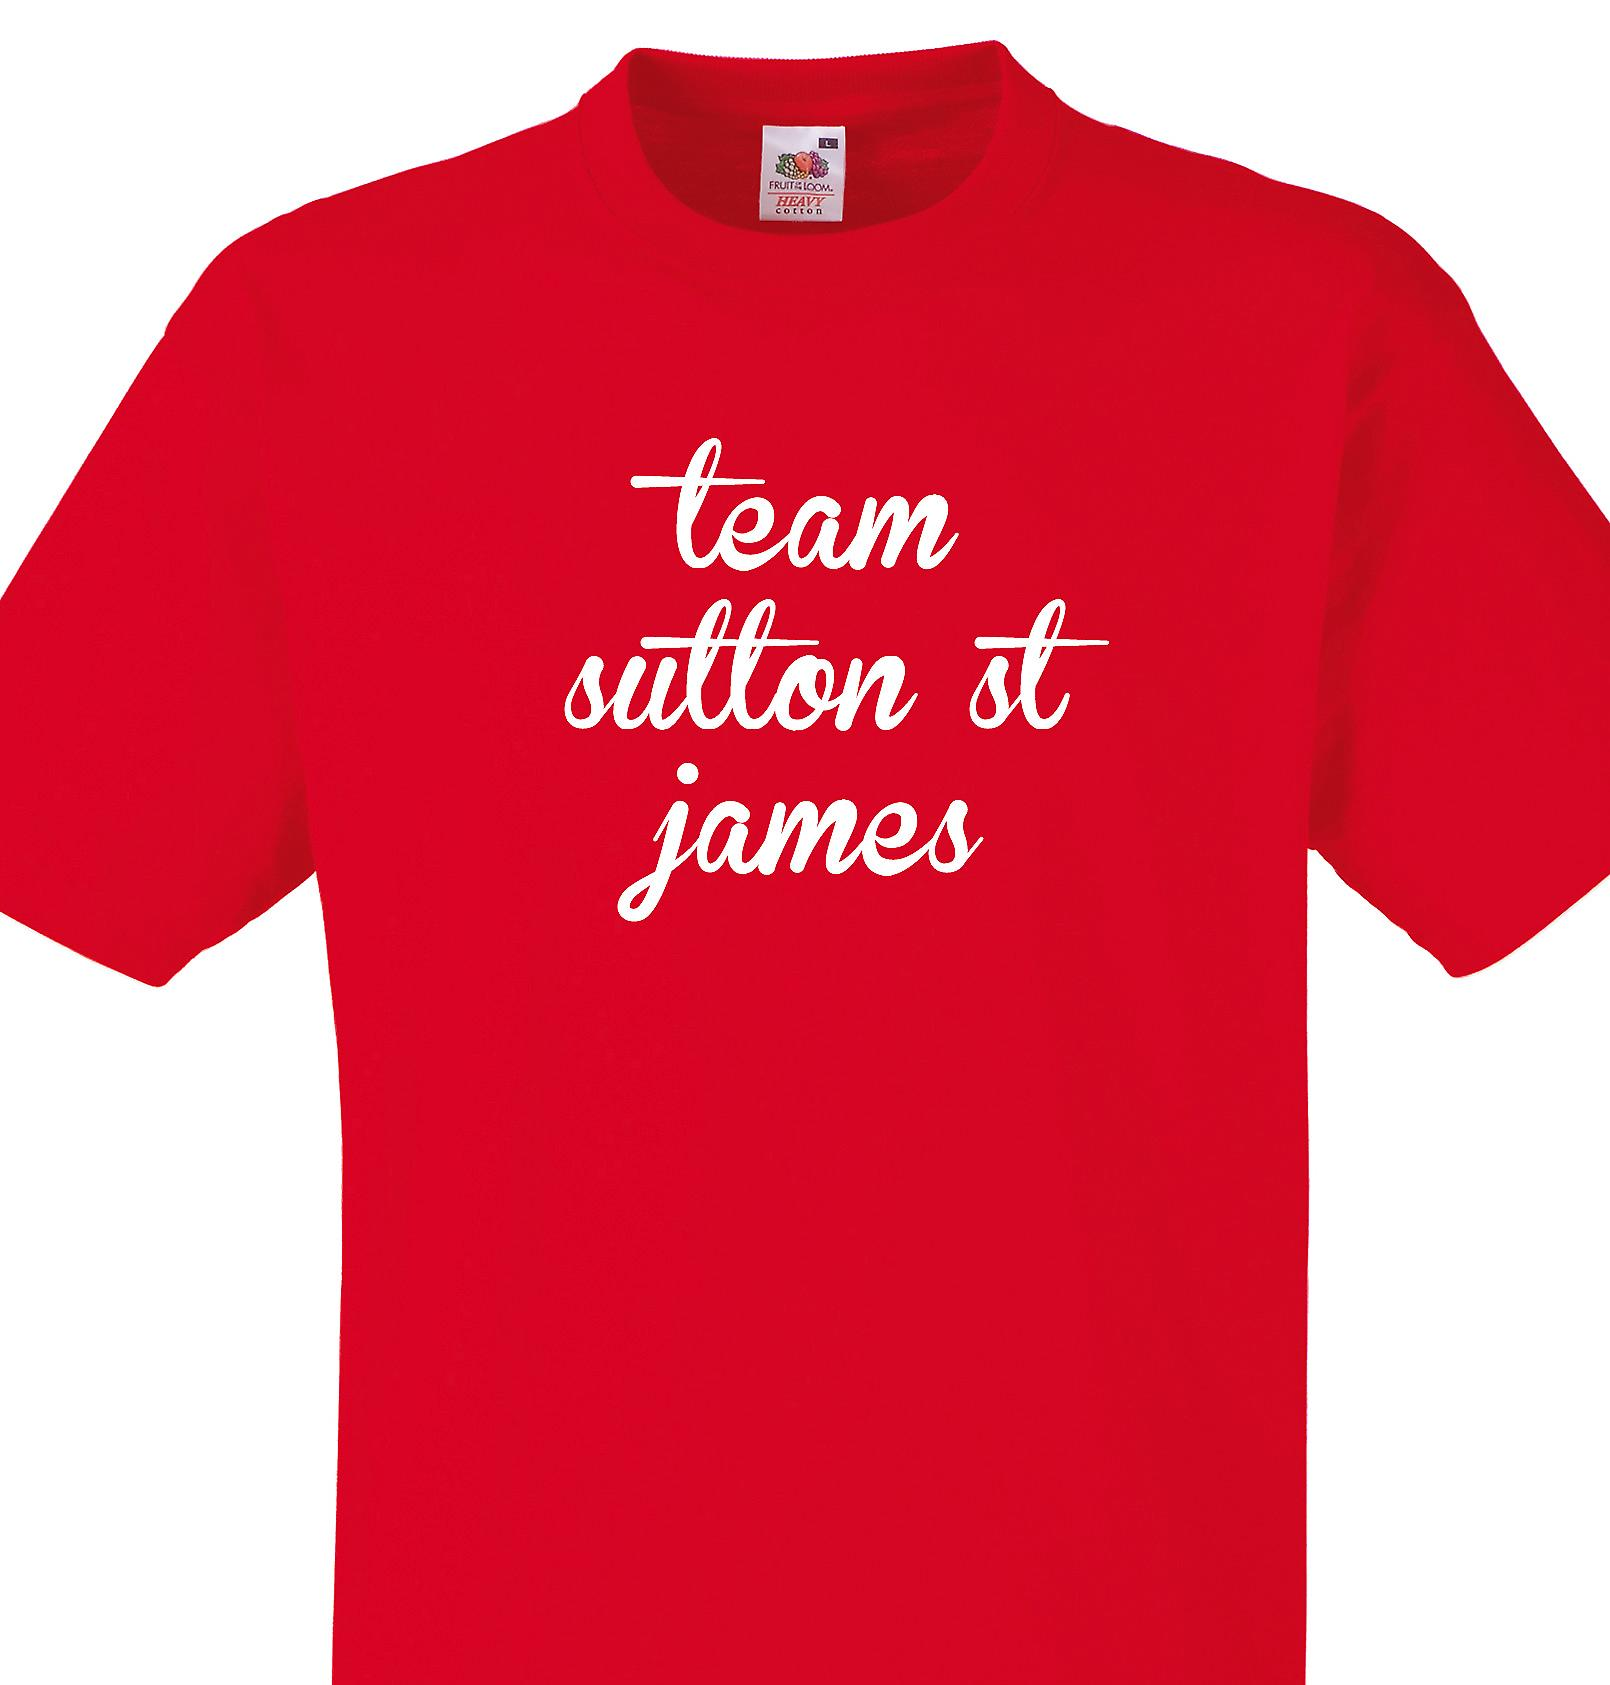 Team Sutton st james Red T shirt